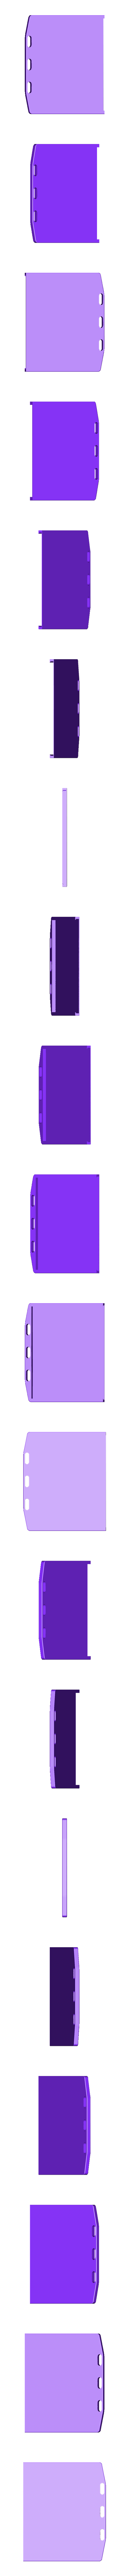 Flat-4_SD_Card_Cover_v1-2.STL Download free STL file Flat SD Card Holder • 3D print template, WalterHsiao